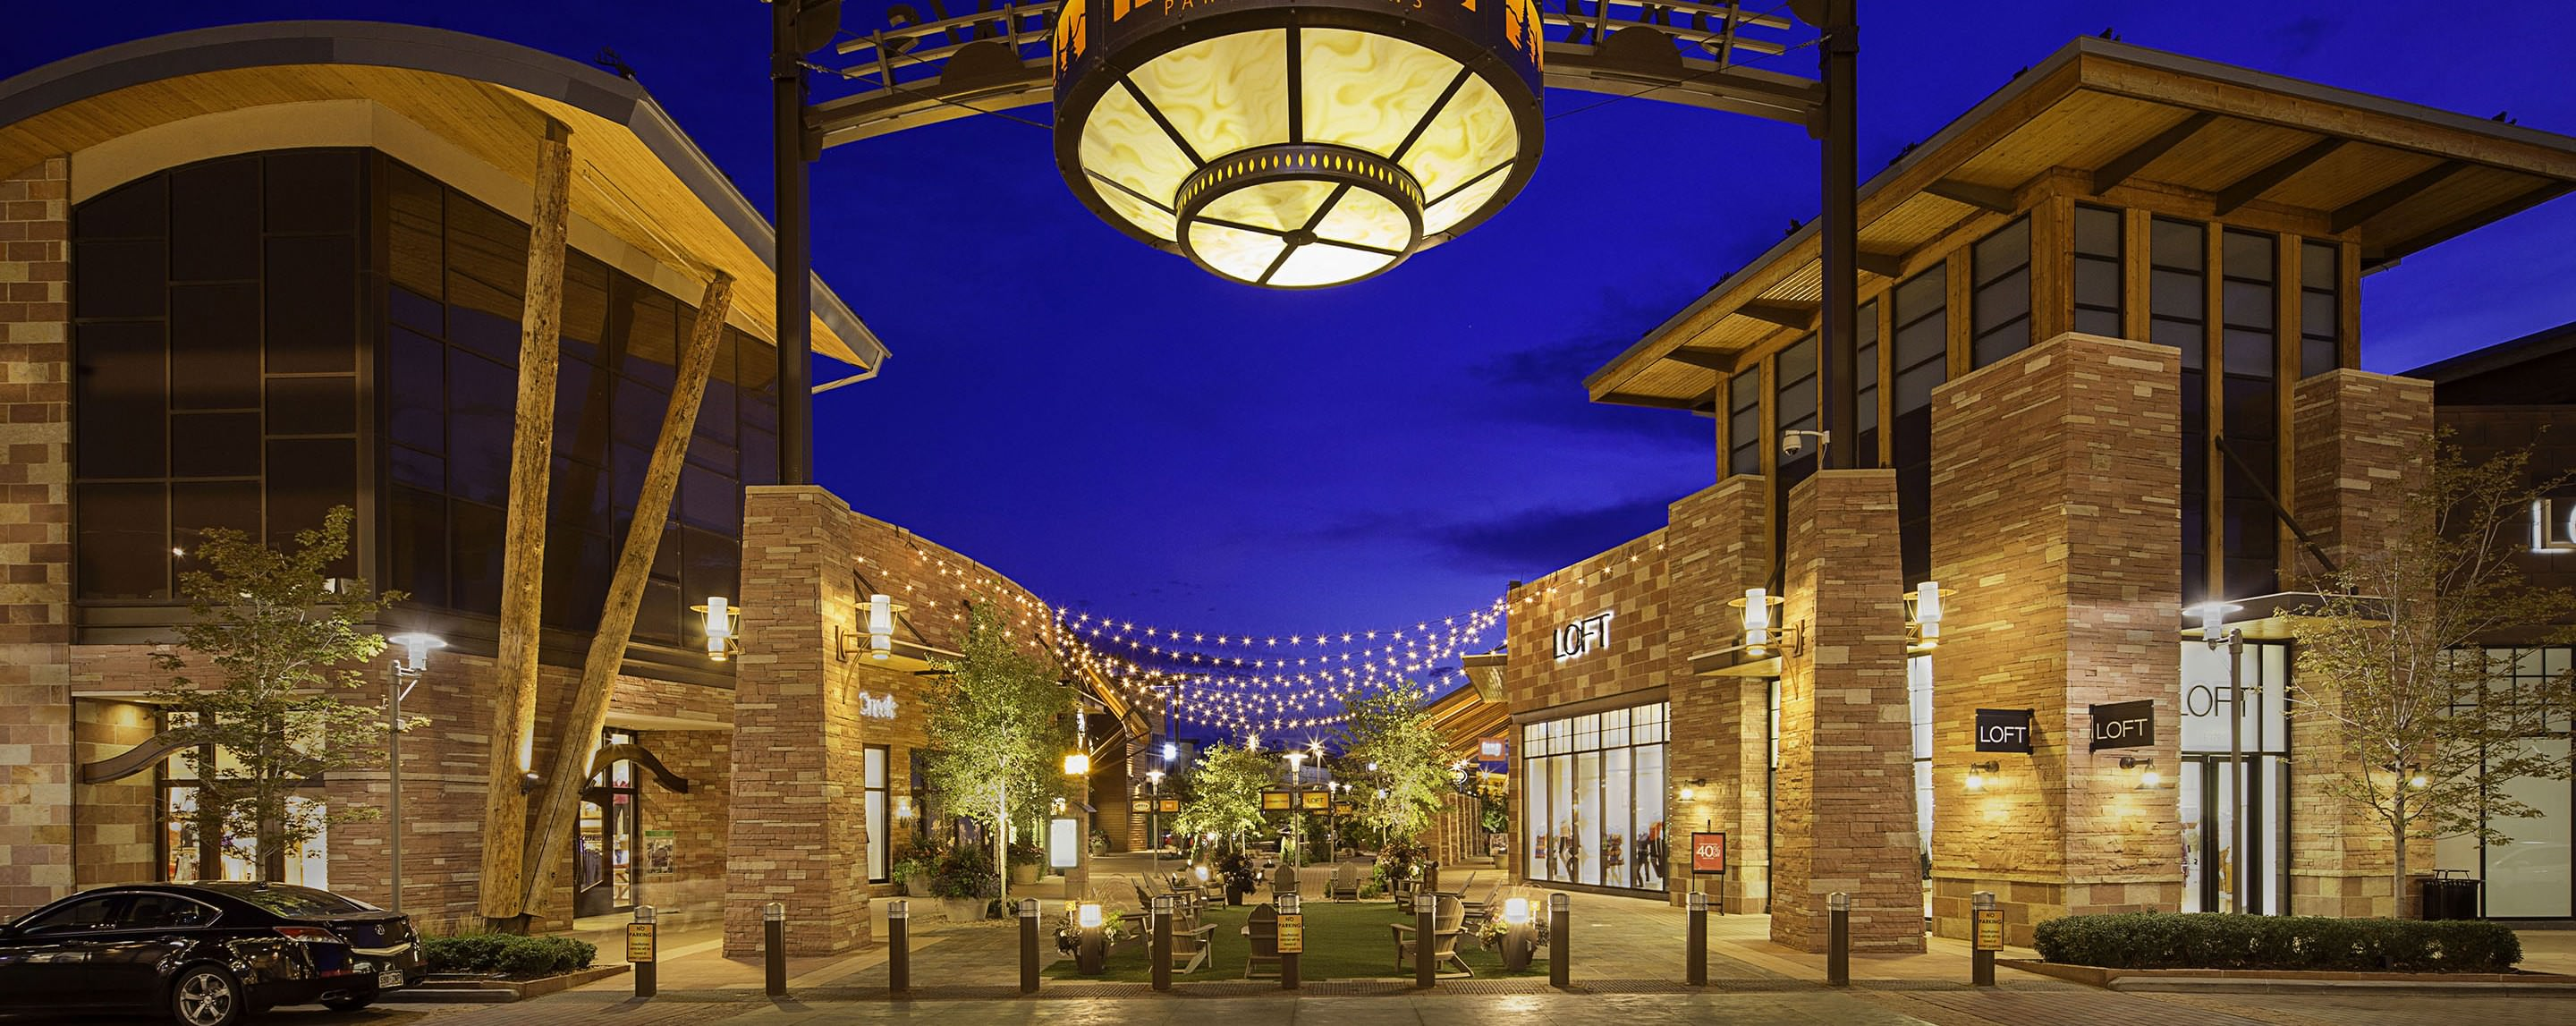 Outside at night, different kinds of lights lead shoppers into the Park Meadows entrance and store fronts.